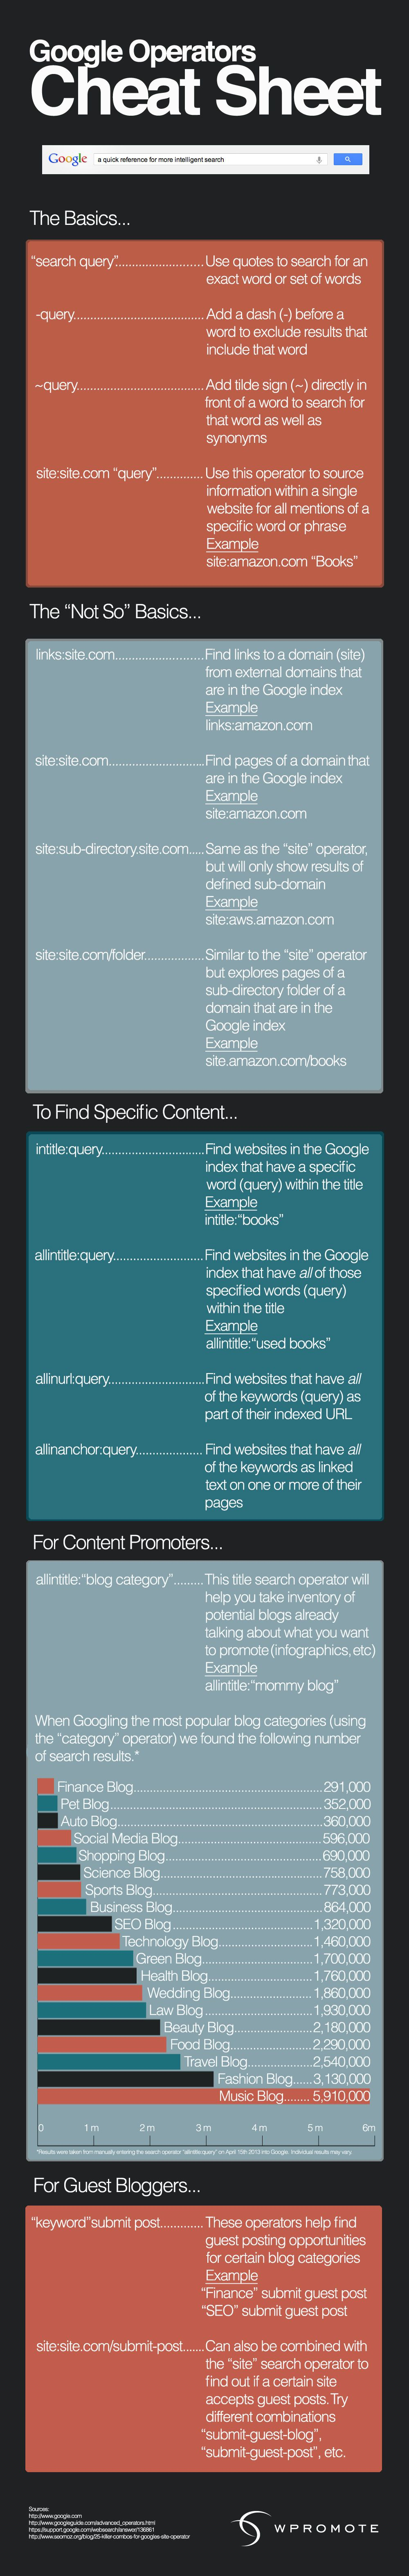 Cheat Sheet To Using Google Search More Effectively | Google